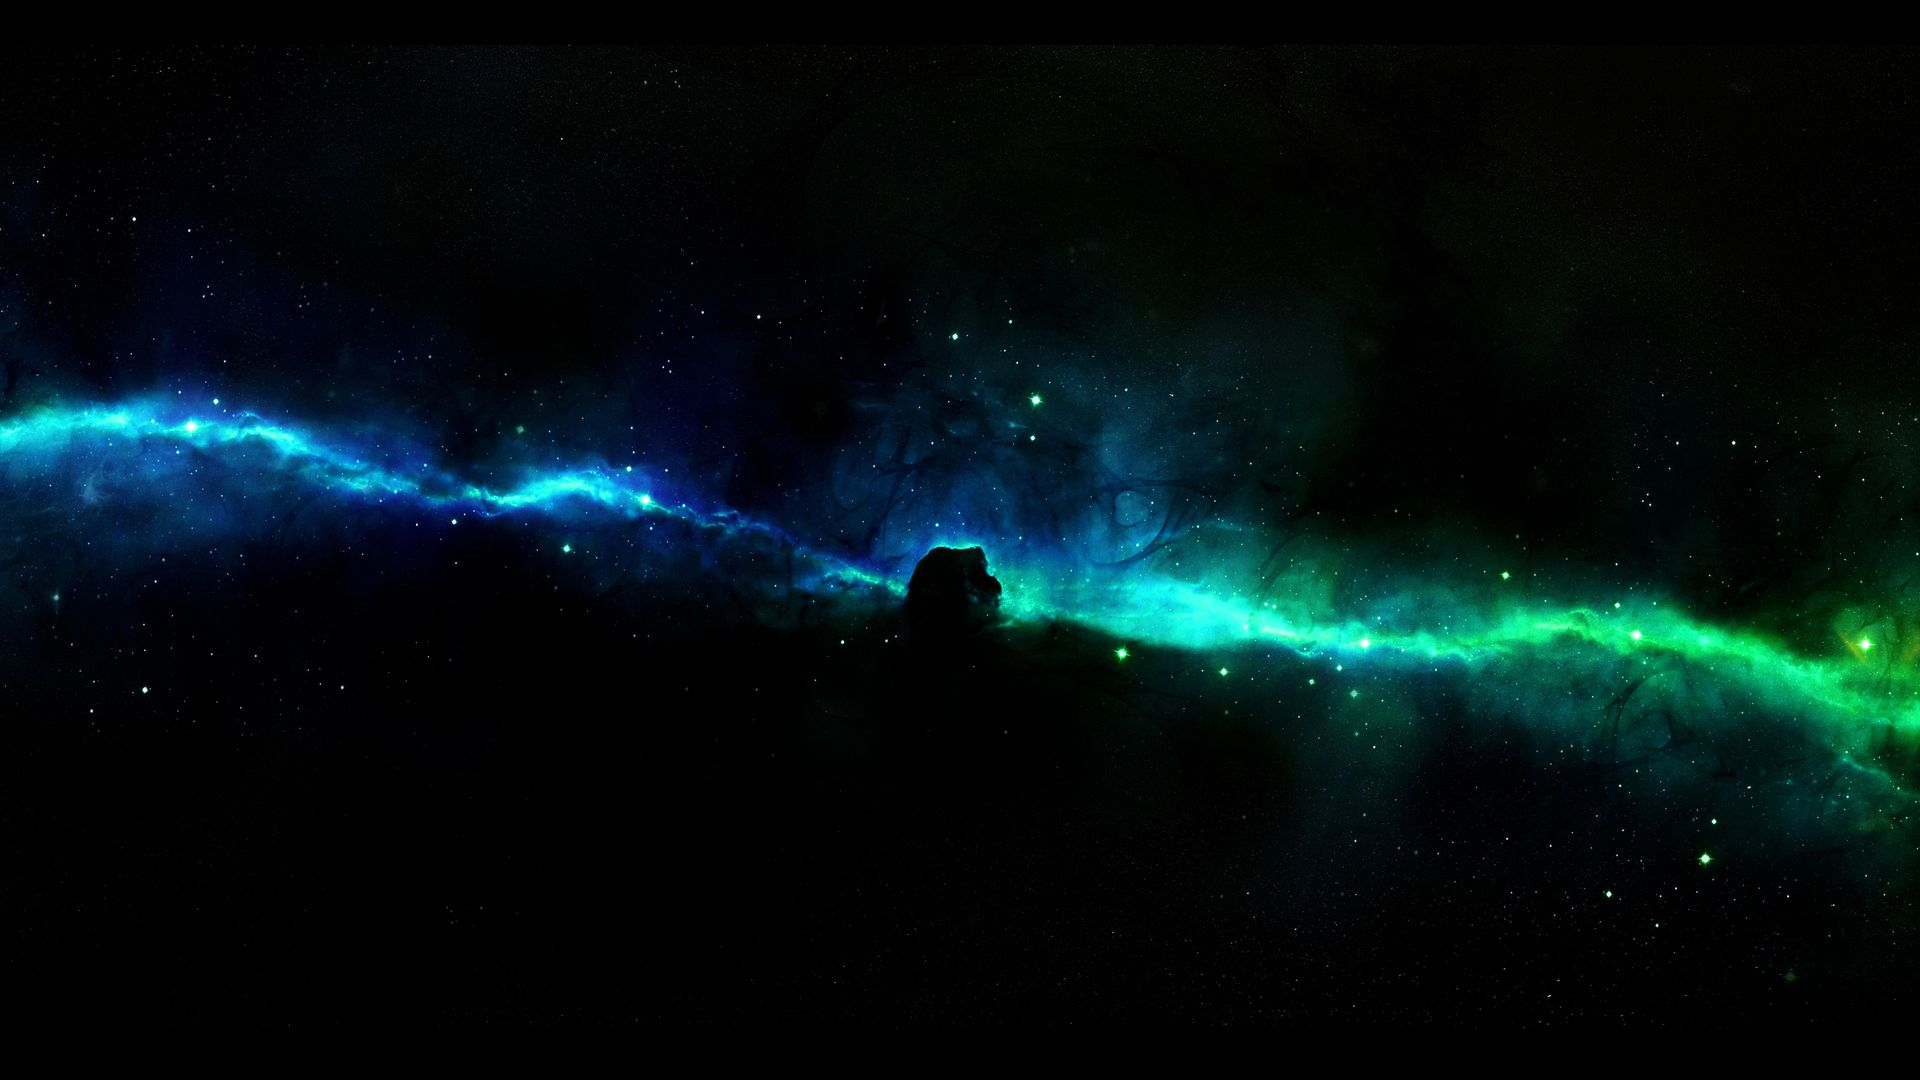 Blue Green Space Nebula HD Wallpaper 1920x1080 | Studio 3 ... Blue Nebula Wallpaper Widescreen